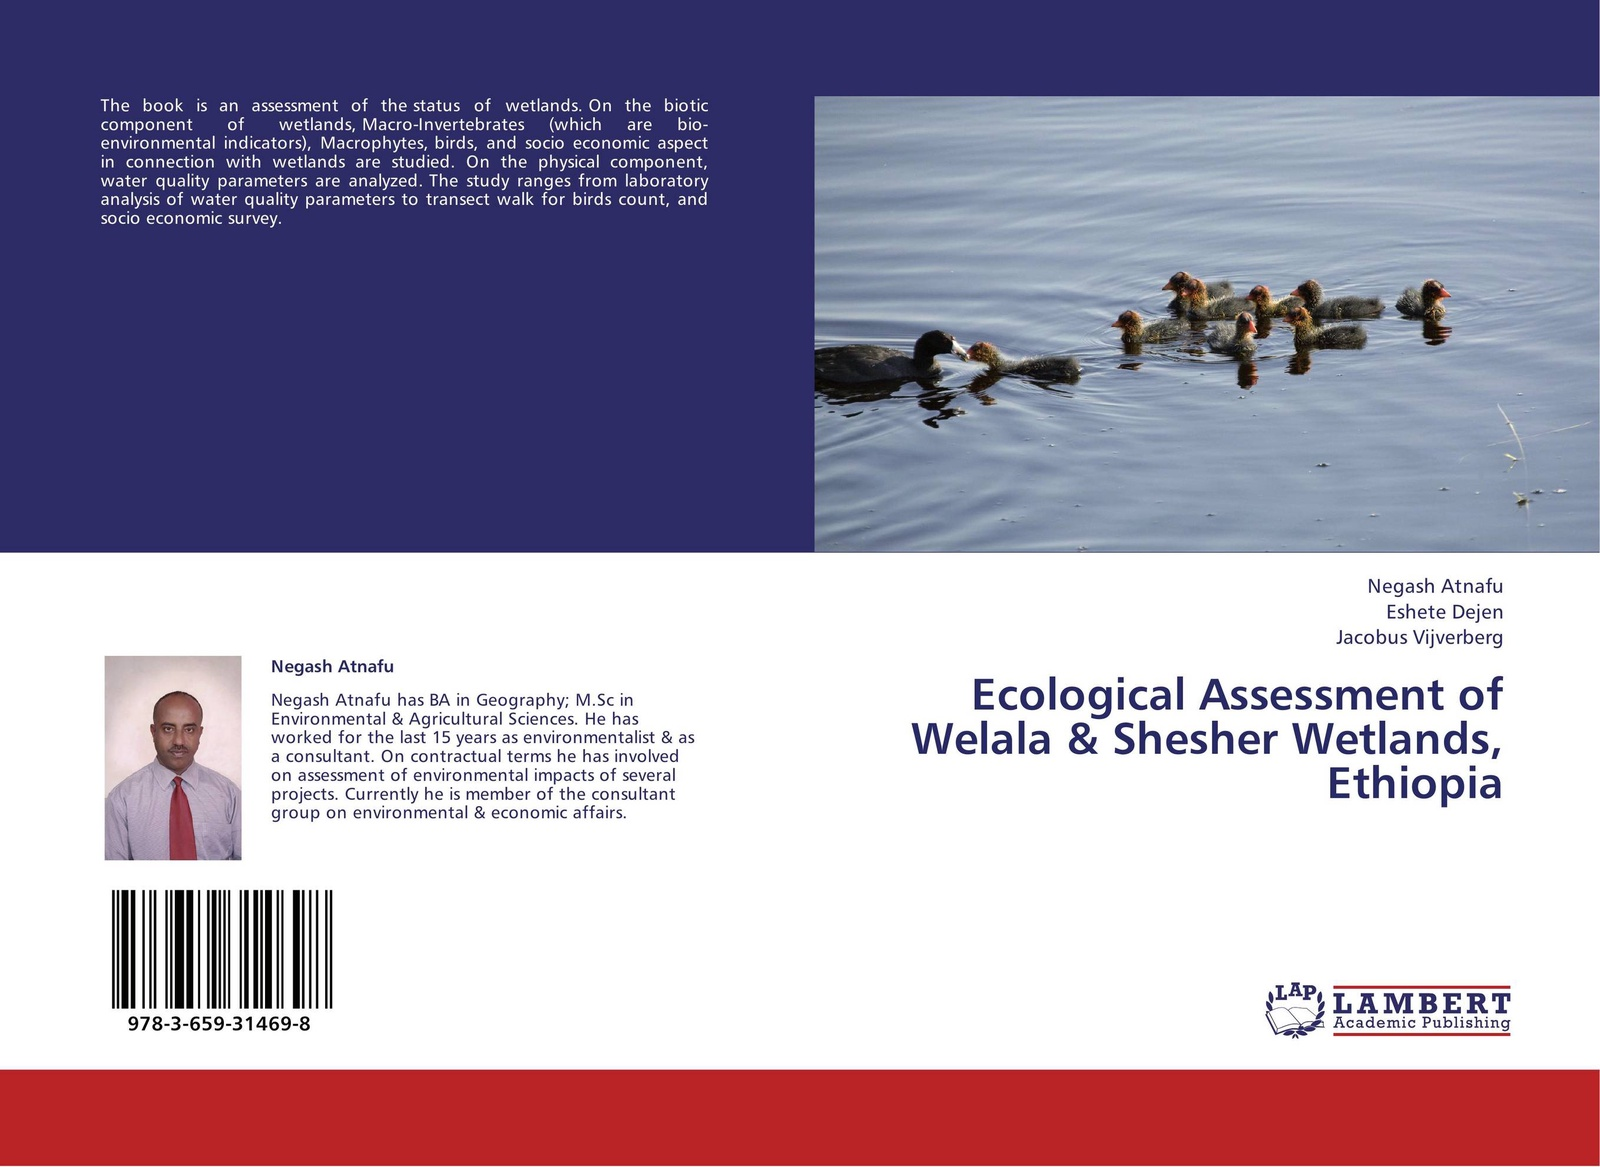 купить Negash Atnafu,Eshete Dejen and Jacobus Vijverberg Ecological Assessment of Welala & Shesher Wetlands, Ethiopia по цене 3944 рублей